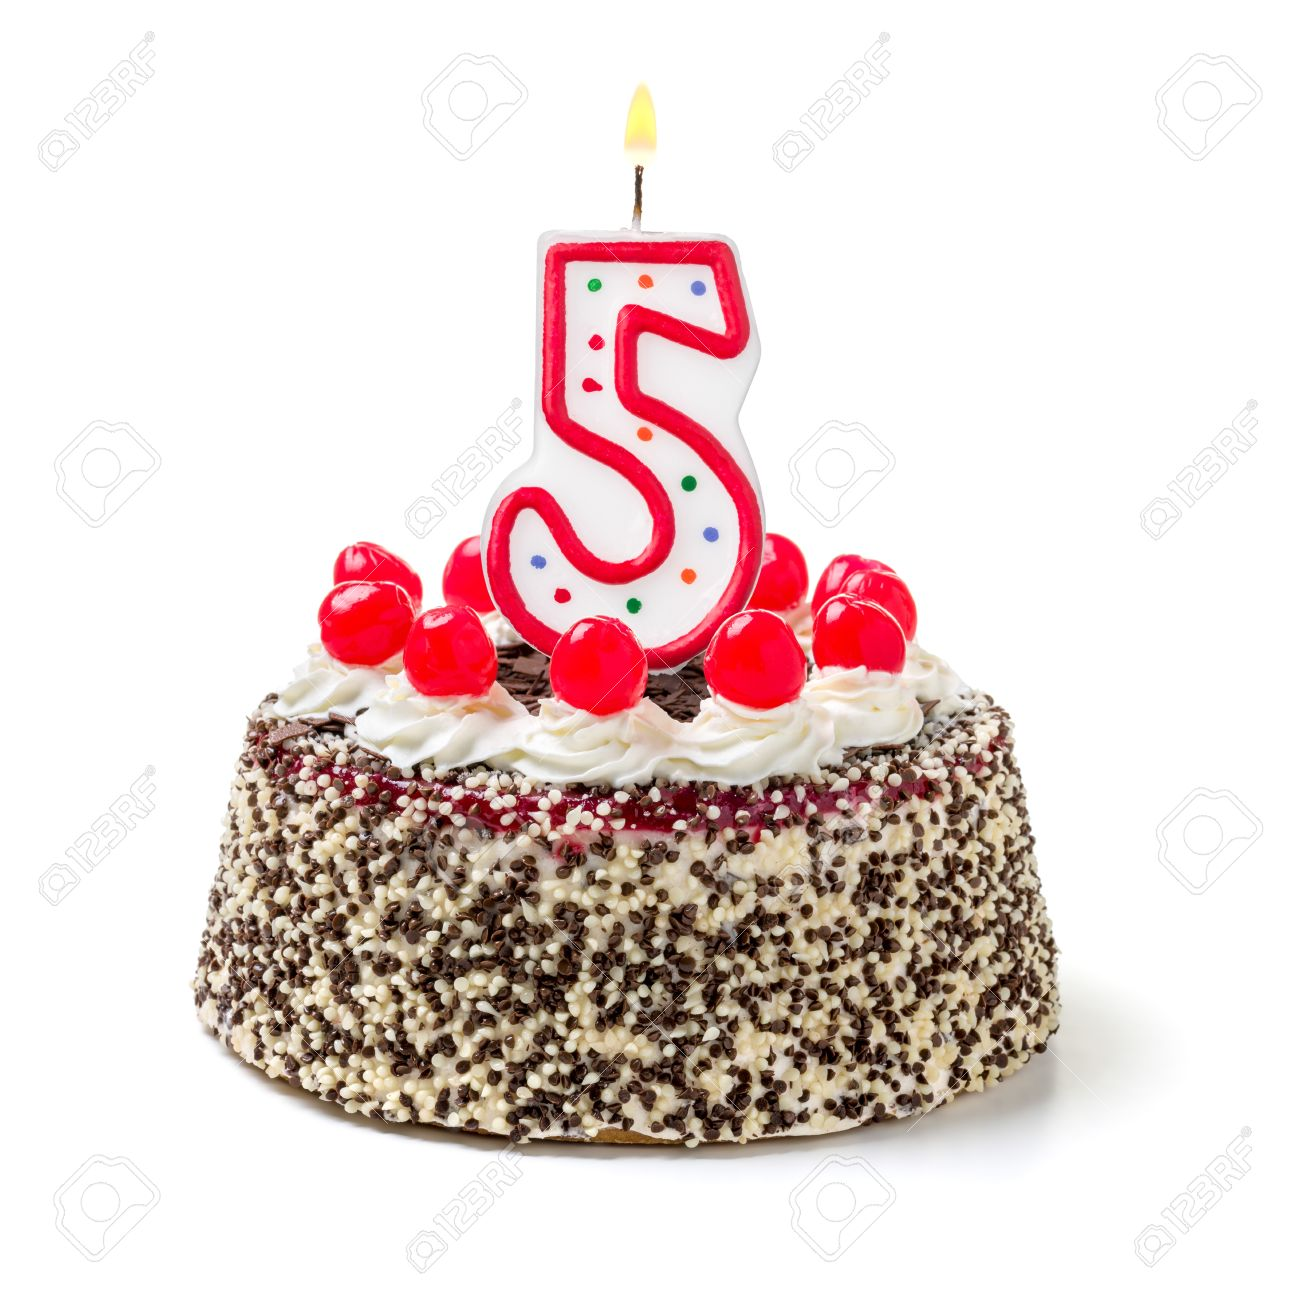 Birthday Cake With Burning Candle Number 5 Stock Photo